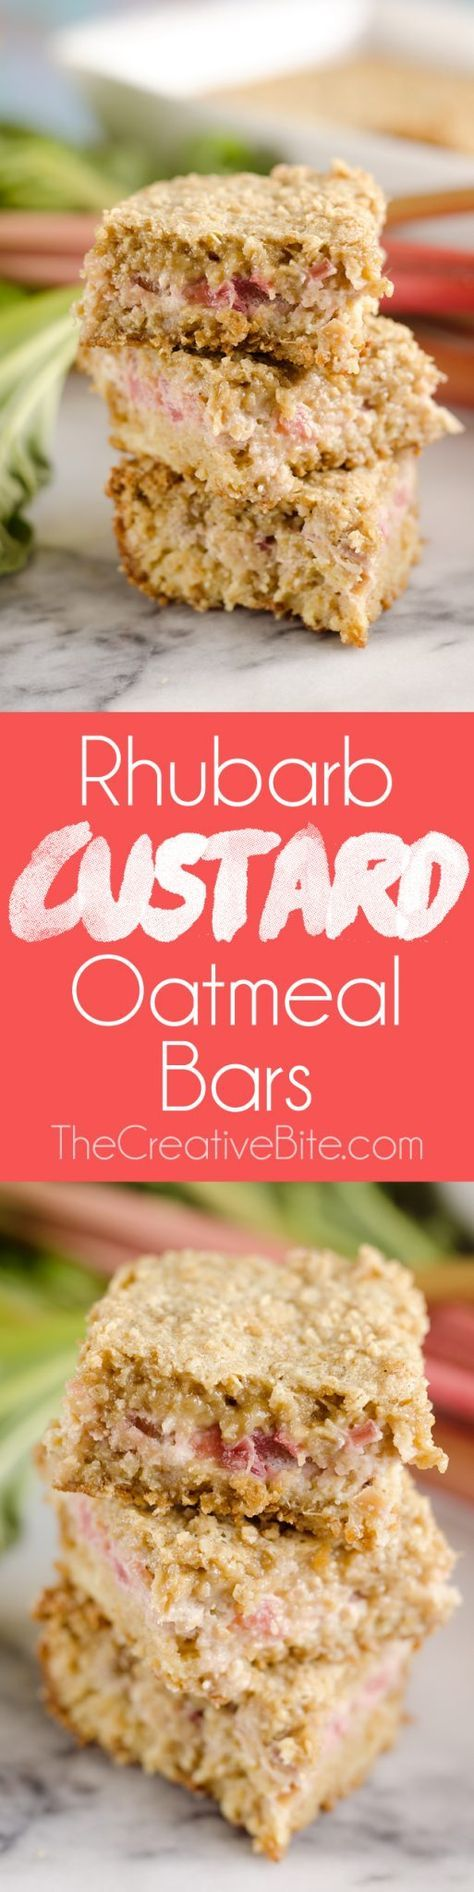 Rhubarb Custard Oatmeal Bars are a fun twist on a favorite summer treat. Fresh rhubarb and custard are layered with chewy oatmeal layers for a dessert that everyone will love! #Rhubarb #Dessert #Sweet